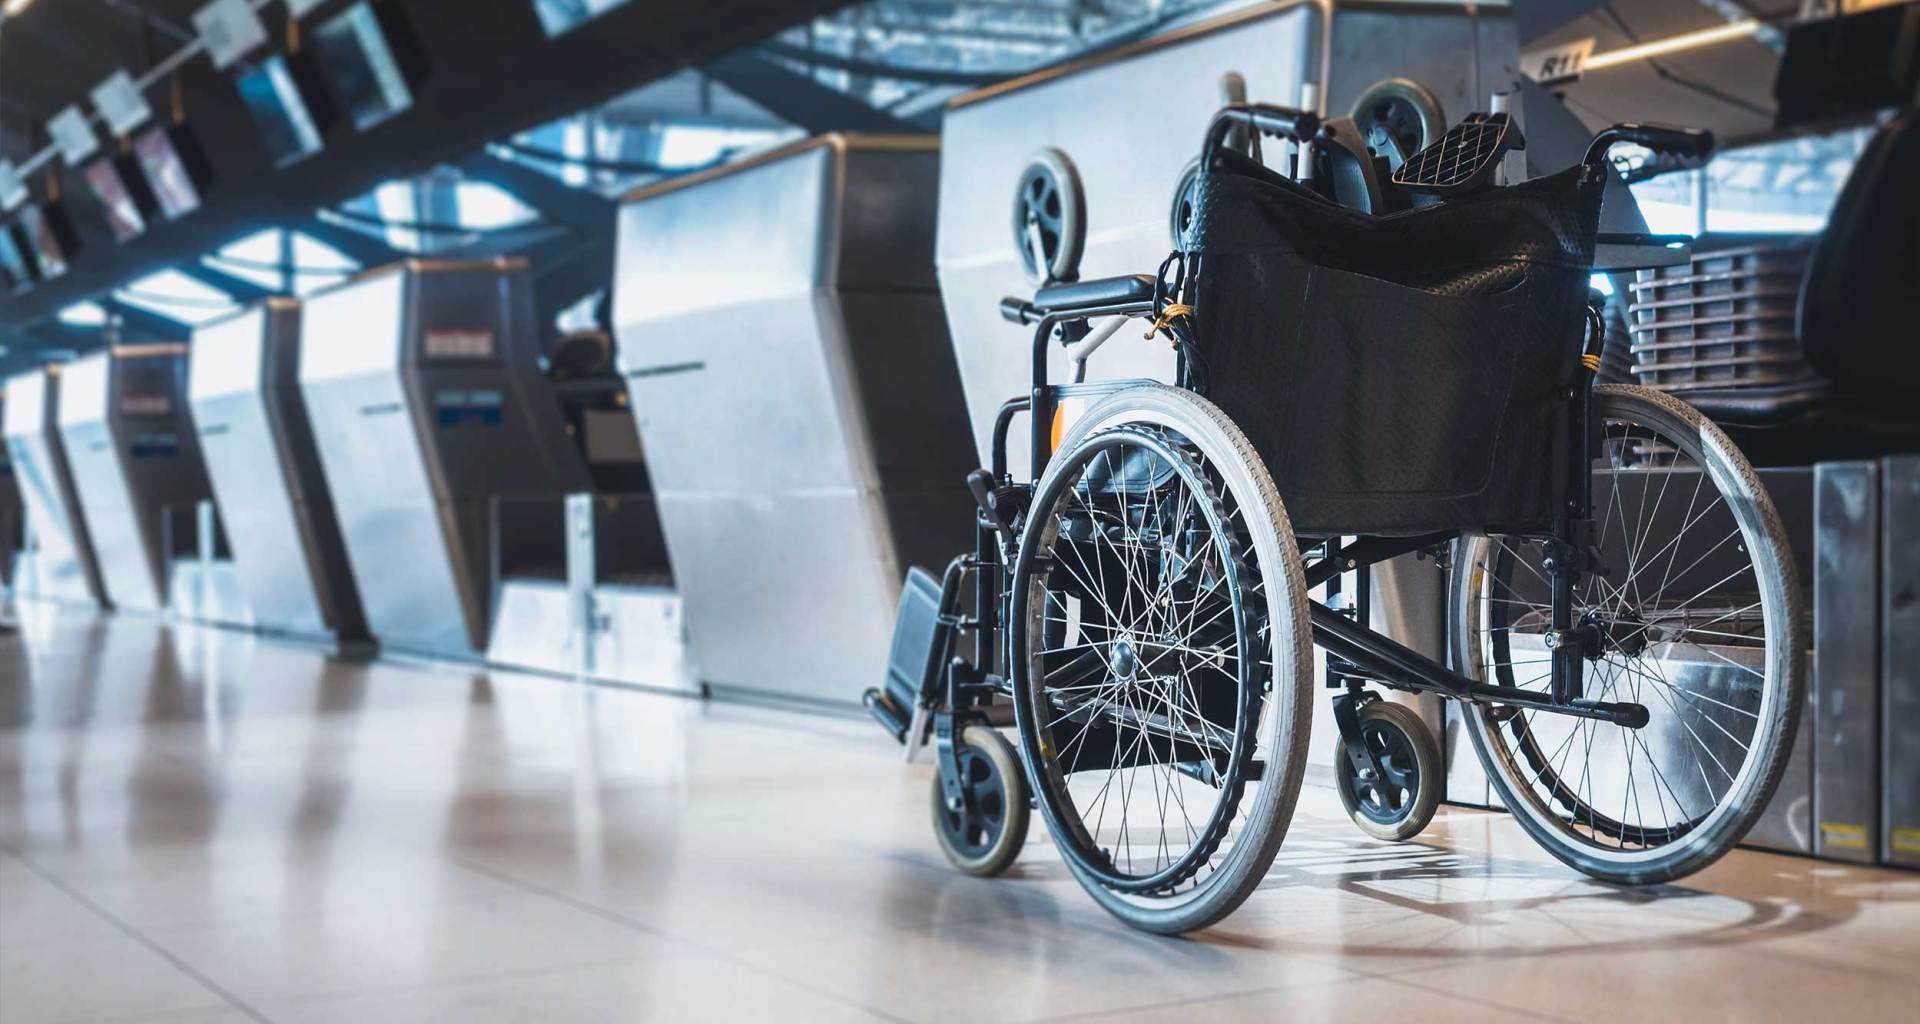 Manual wheelchair at airport check-in counter.